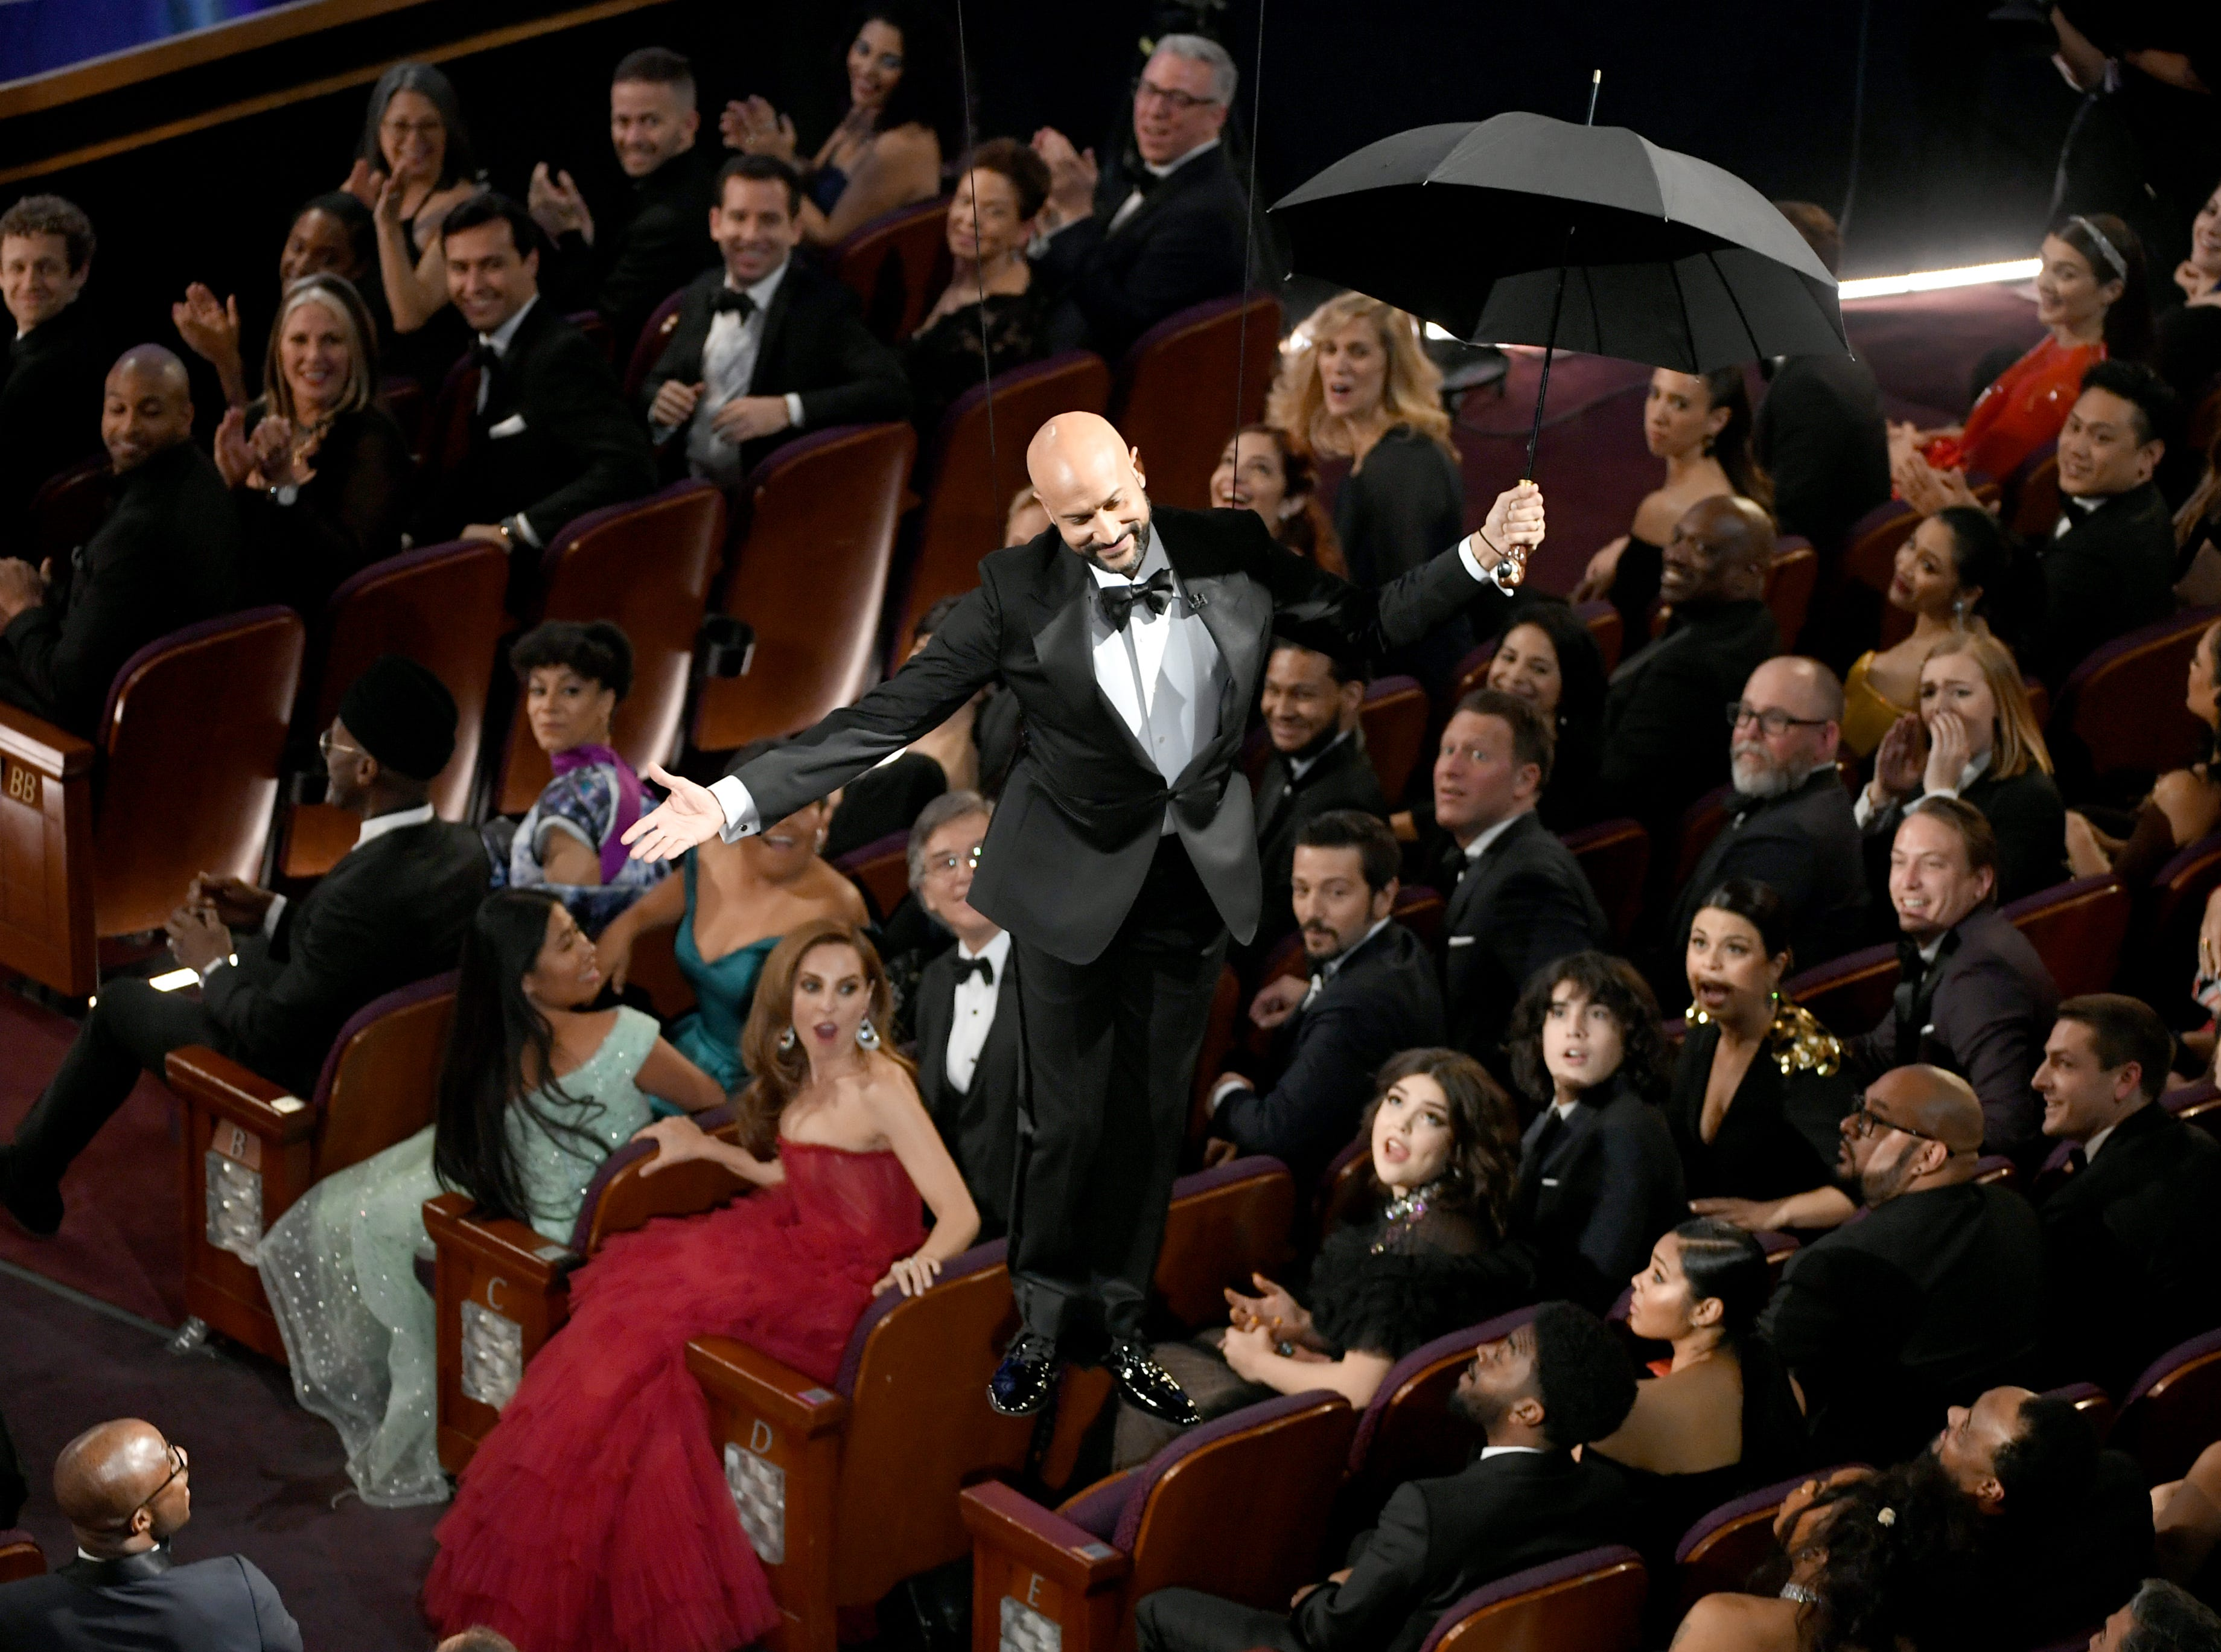 Keegan-Michael Key descends to the floor during the 91st Annual Academy Awards at Dolby Theatre on February 24, 2019 in Hollywood, California.